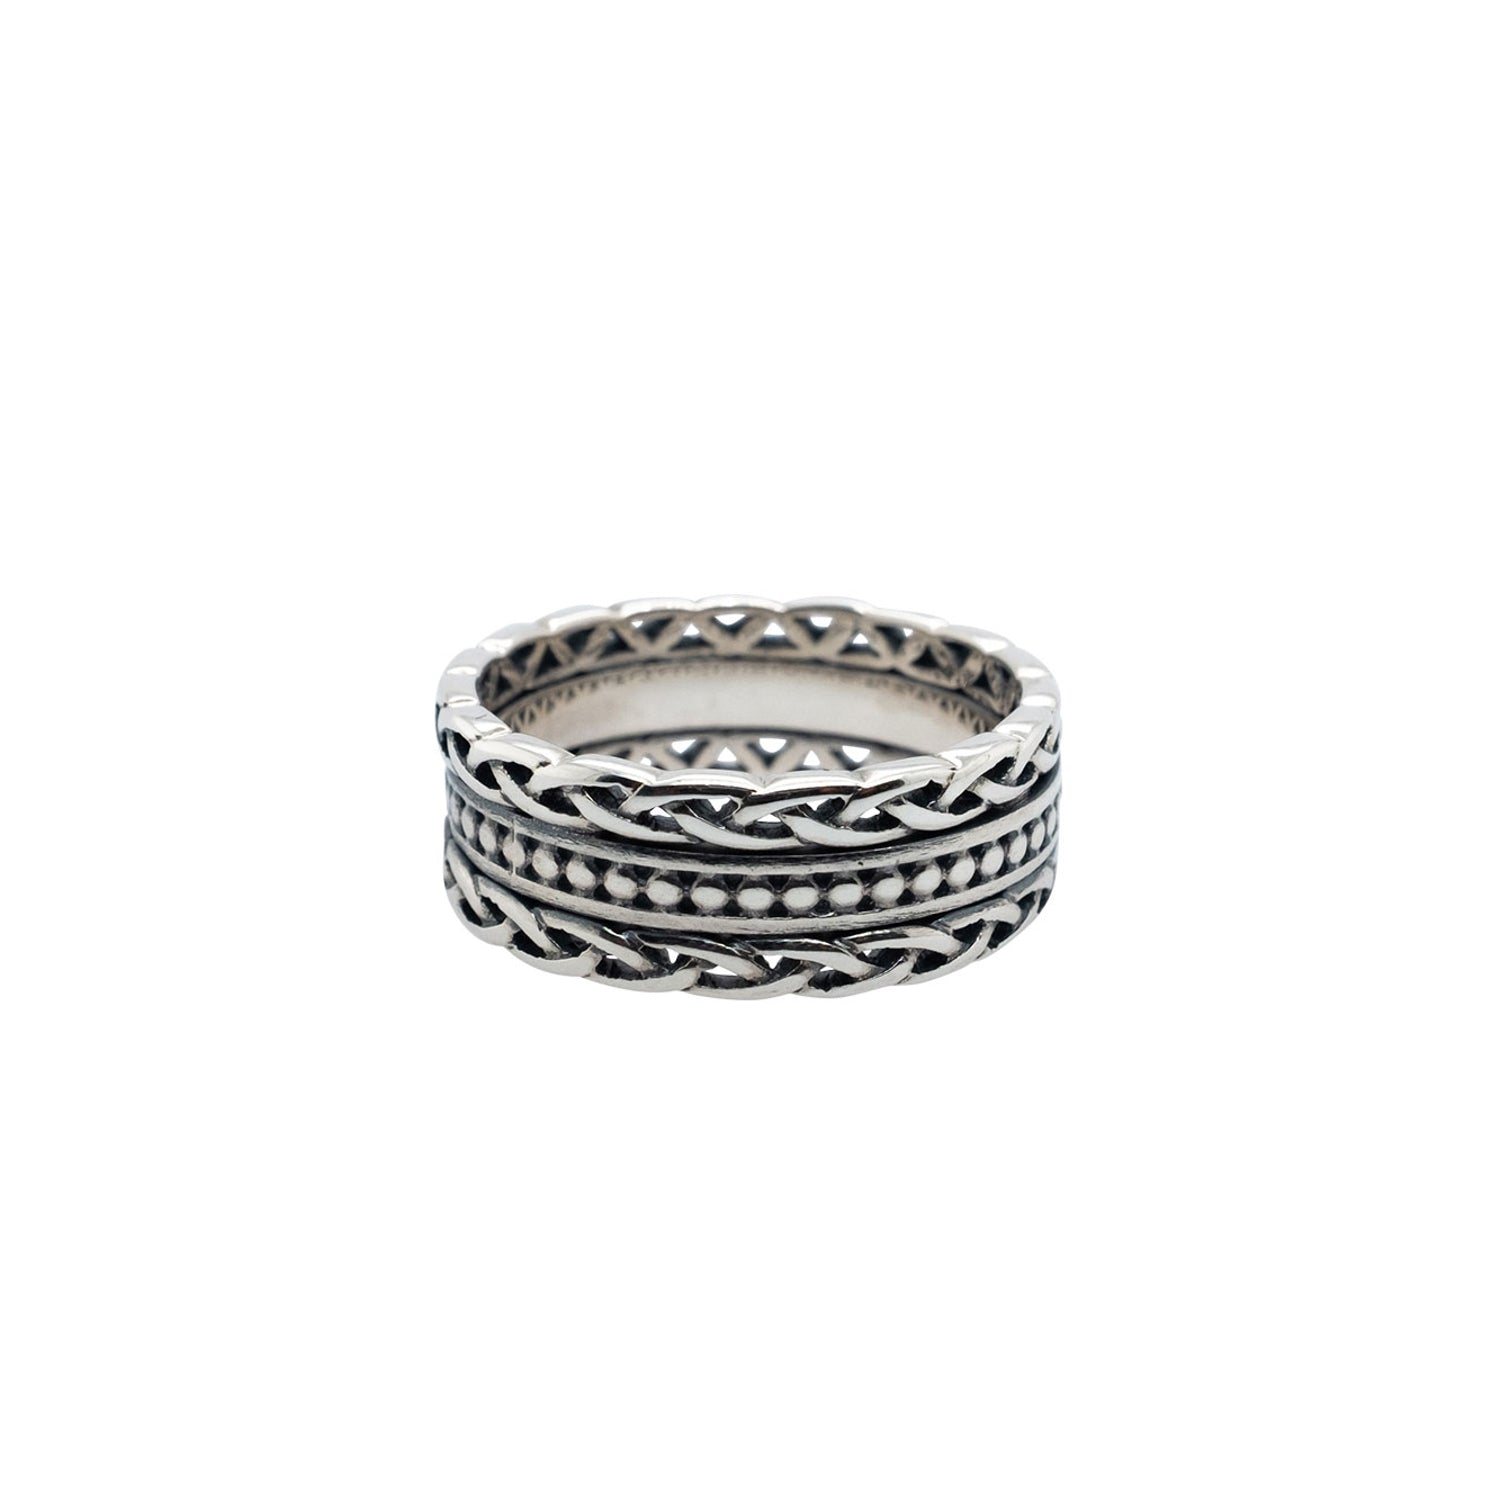 Ring Bands Beaded Ring with Knotwork Rails from welch and company jewelers near syracuse ny